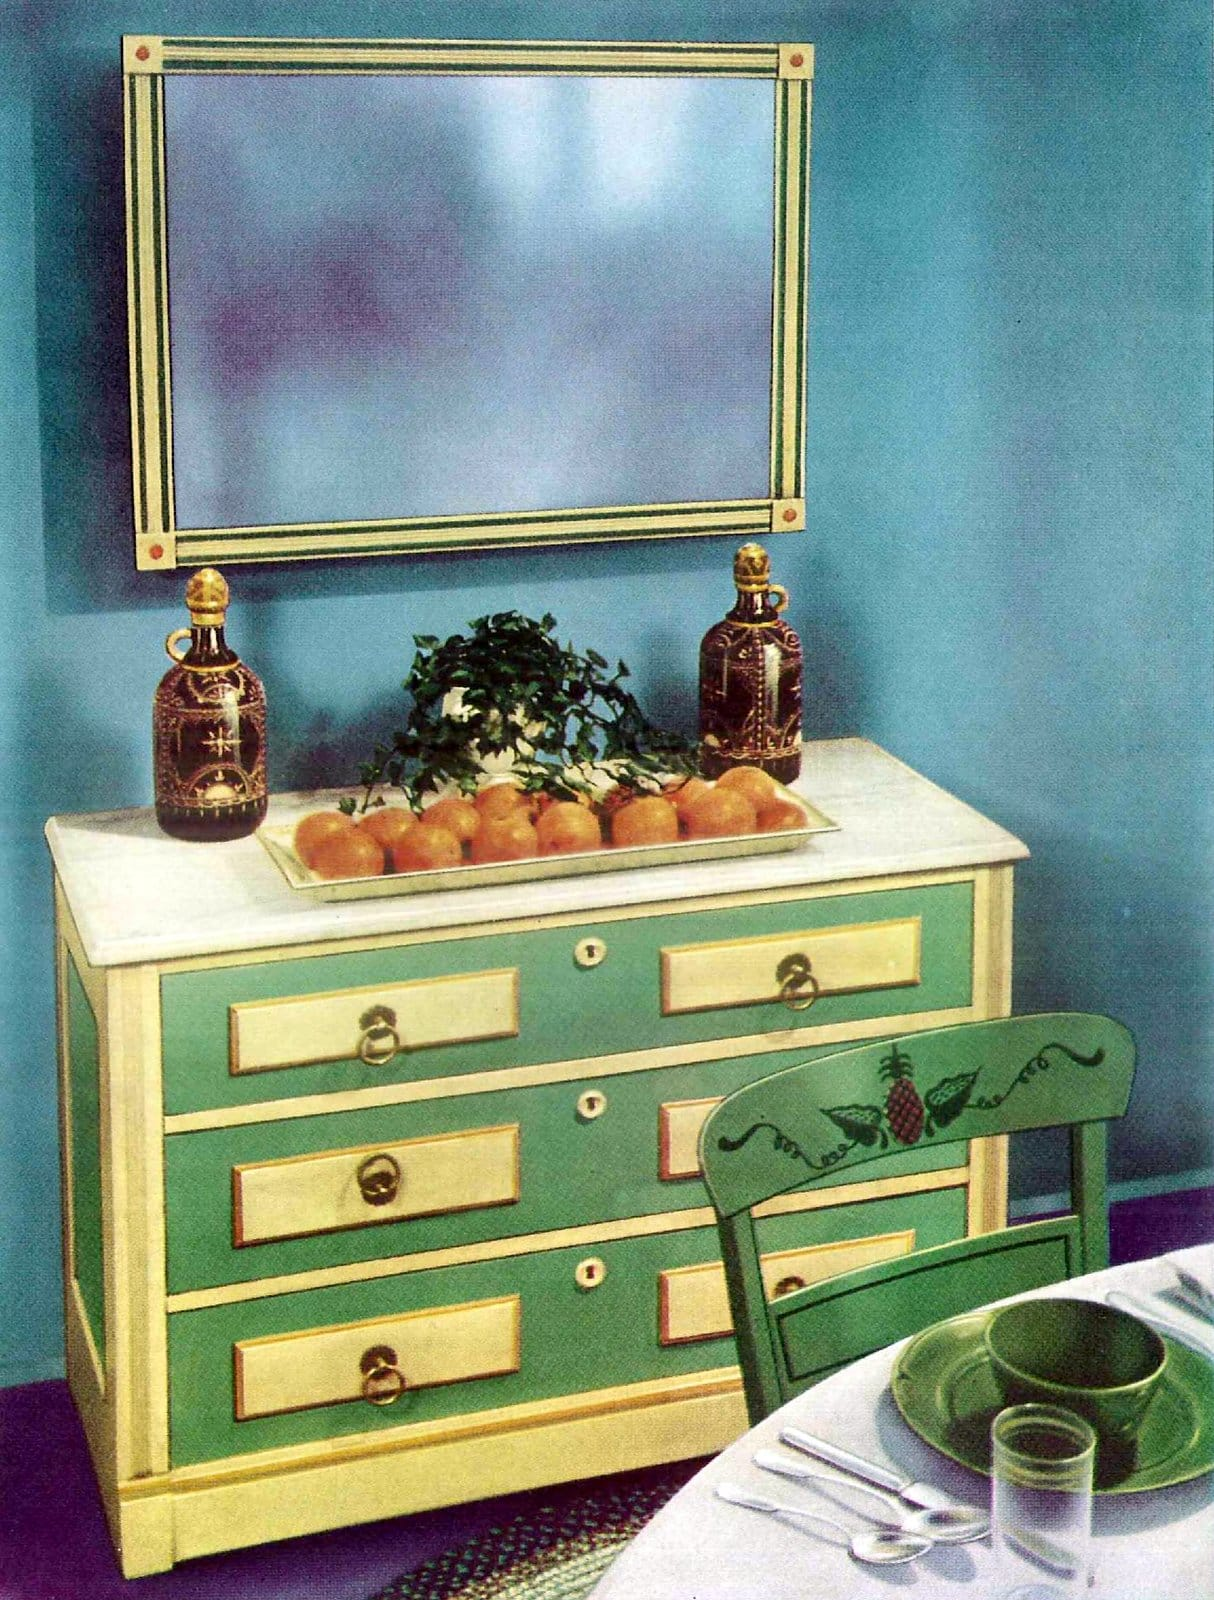 Green and cream drawers with decorative paintwork (1940s)